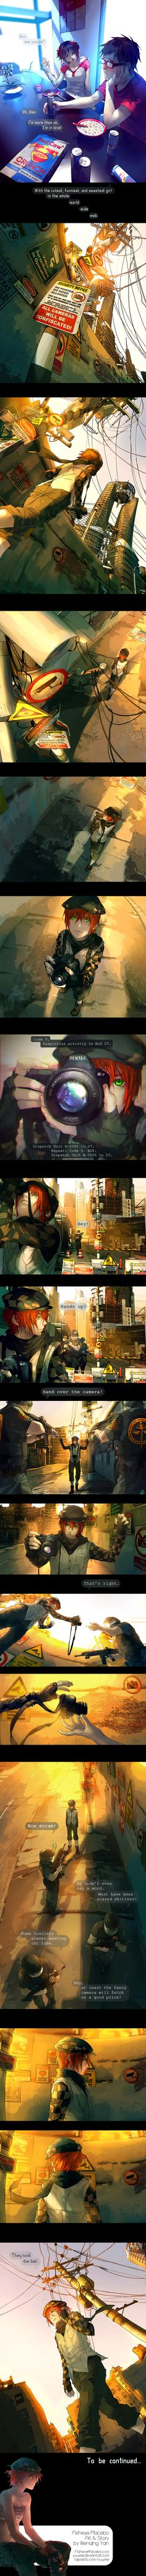 Fisheye Placebo: Ch0 - Part 4 by yuumei on deviantART